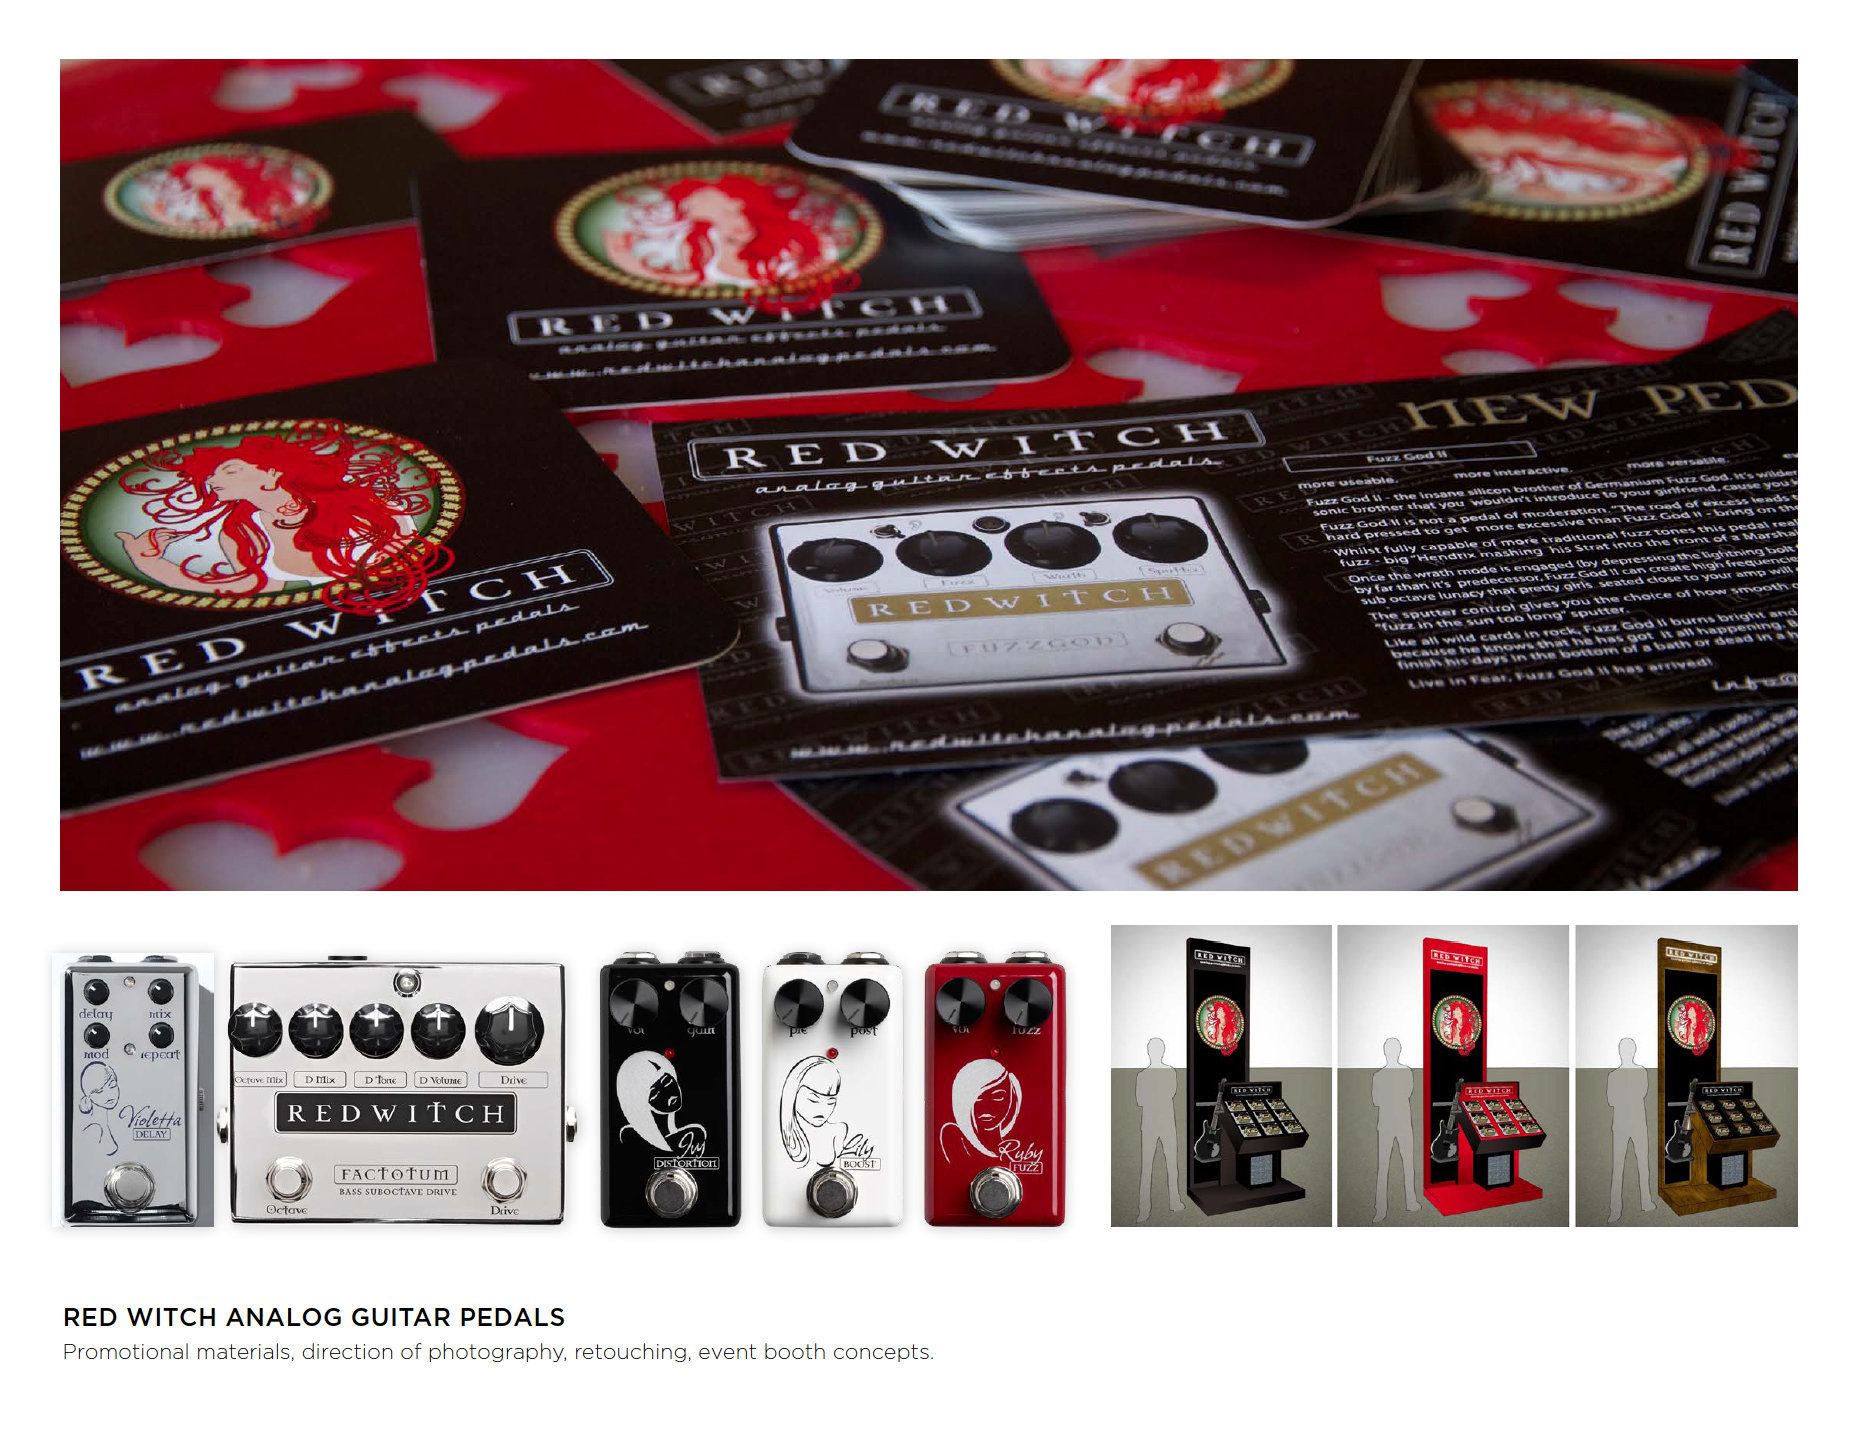 Red Witch Analog Guitar Pedals  - Klara Sadlova